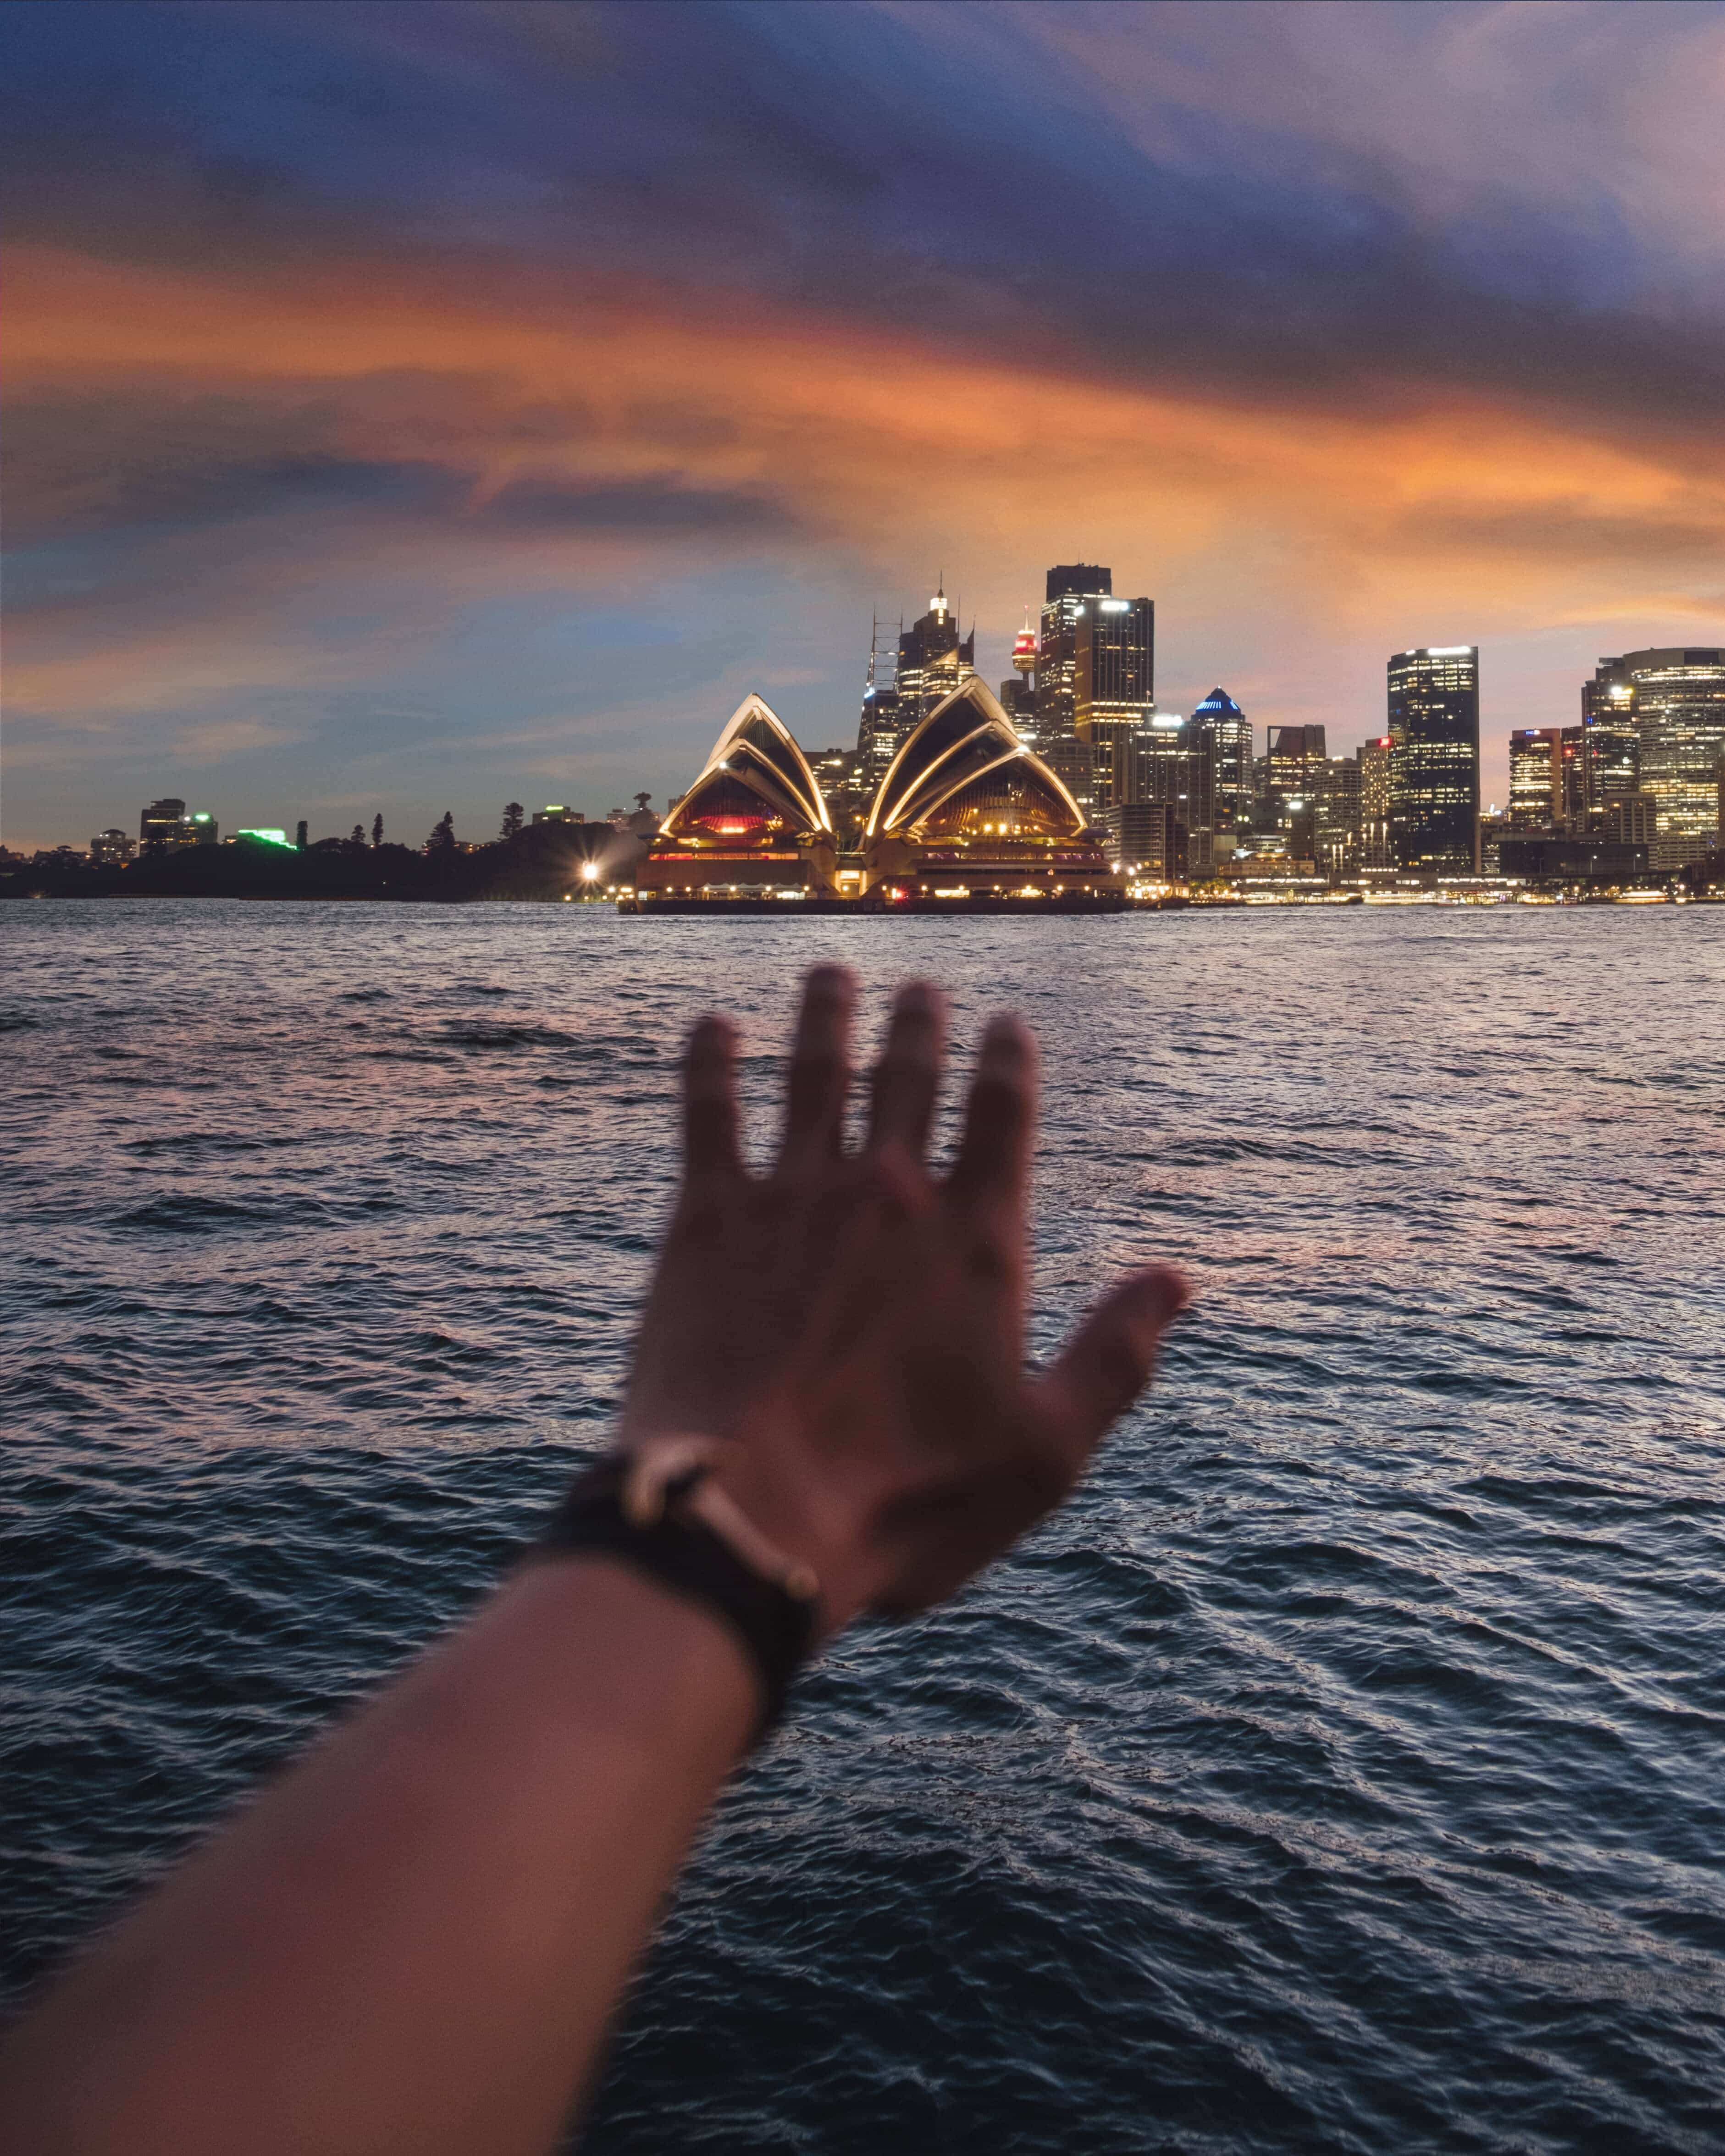 Moving to Australia? This post has all the information you'll need to plan your move to Australia. Visas, jobs, farm work, banking Information & much more!